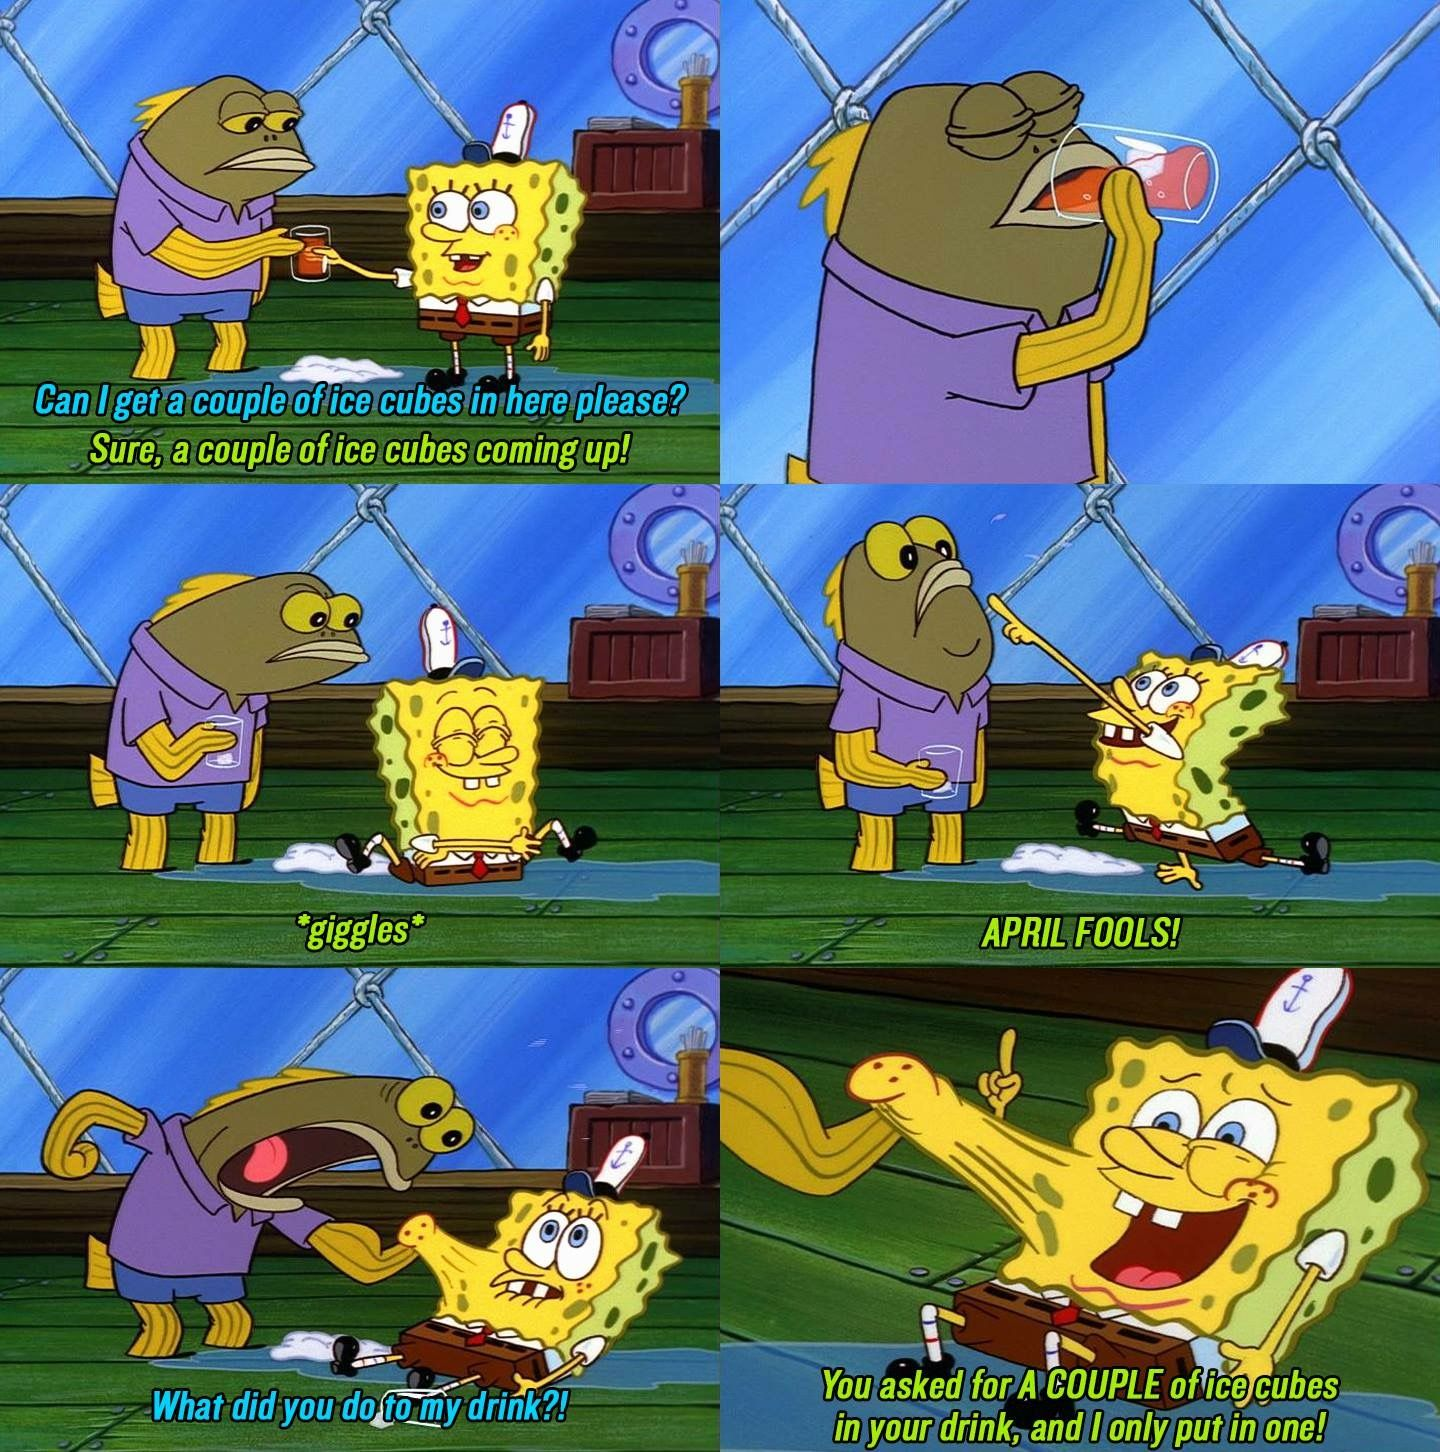 Spongebob April fools joke